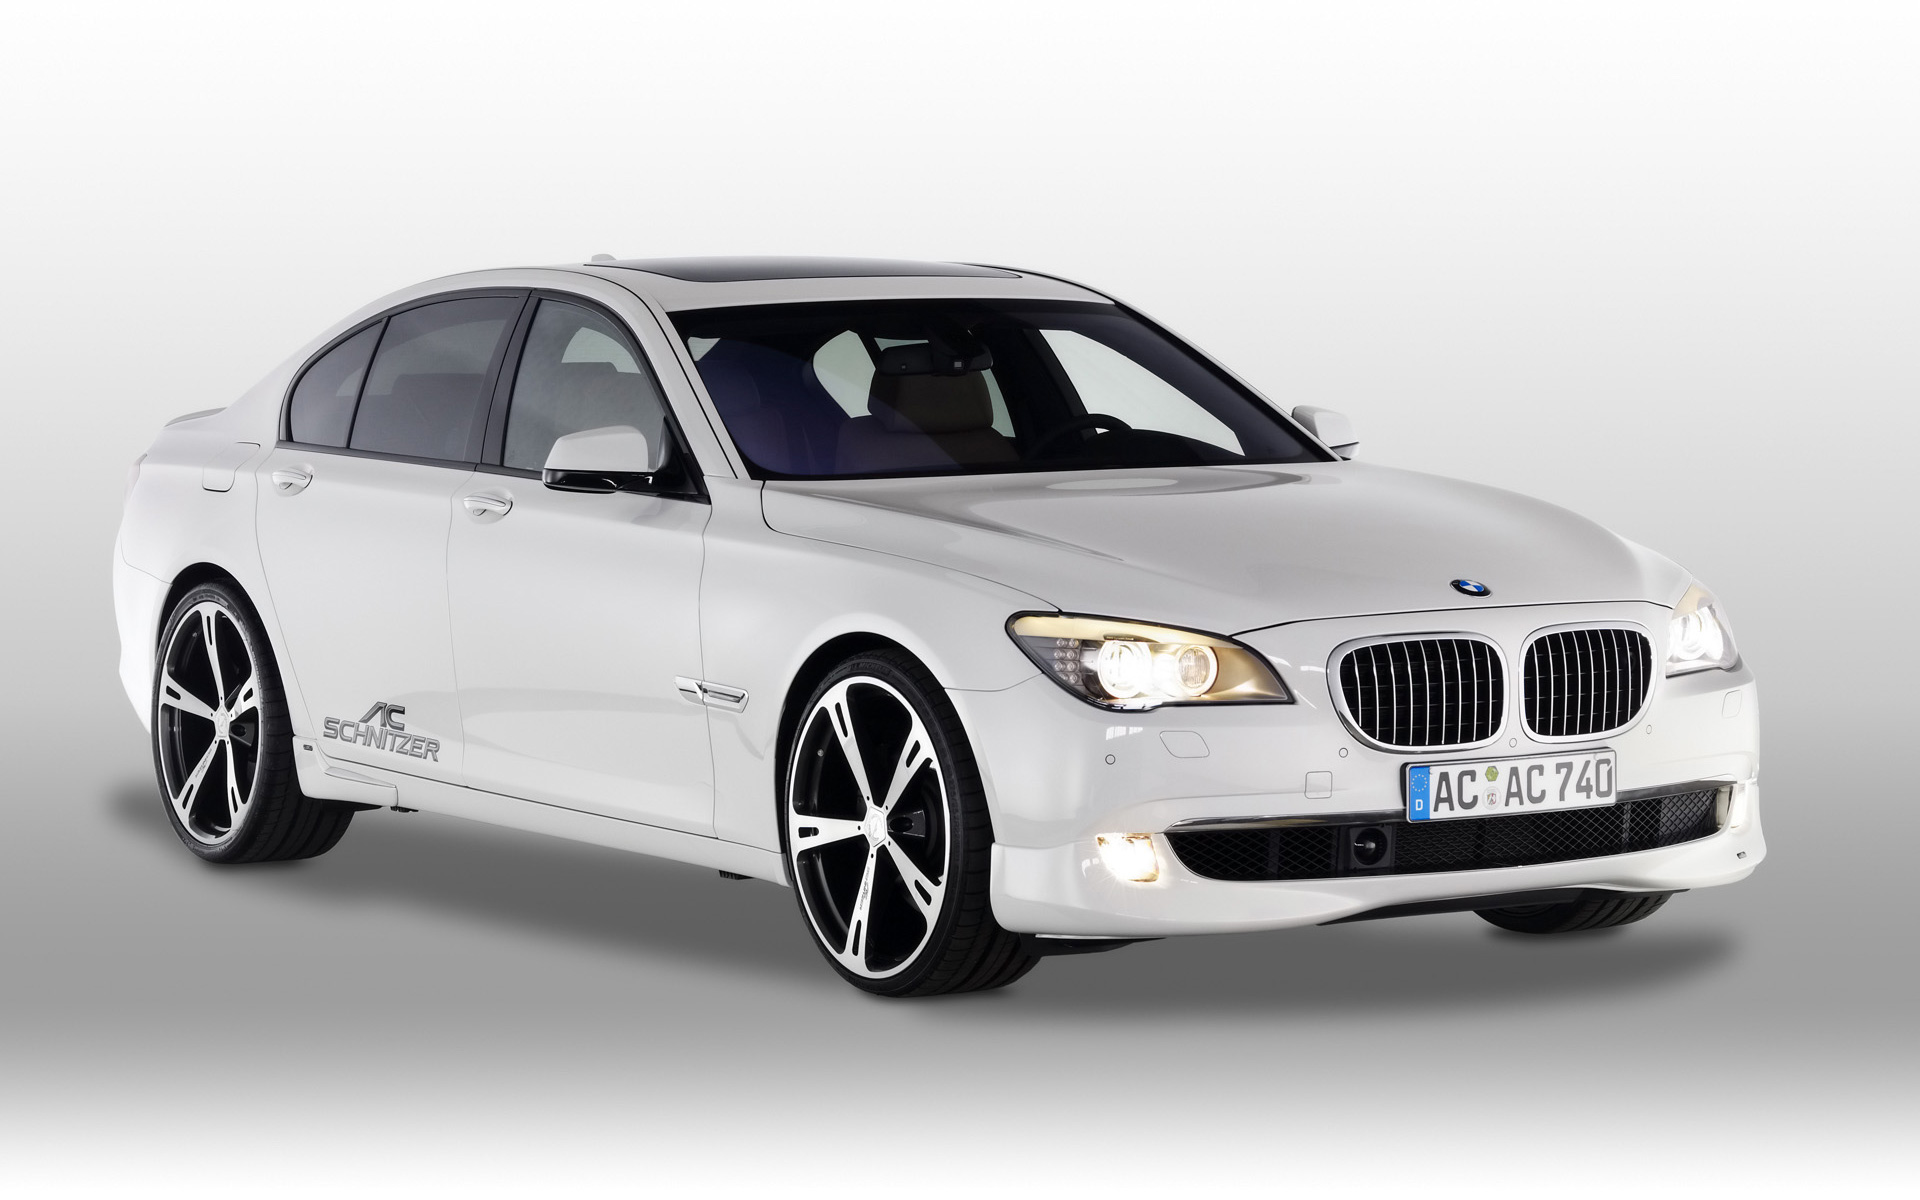 2010 Bmw 7er (f01/f02) - pictures, information and specs ...